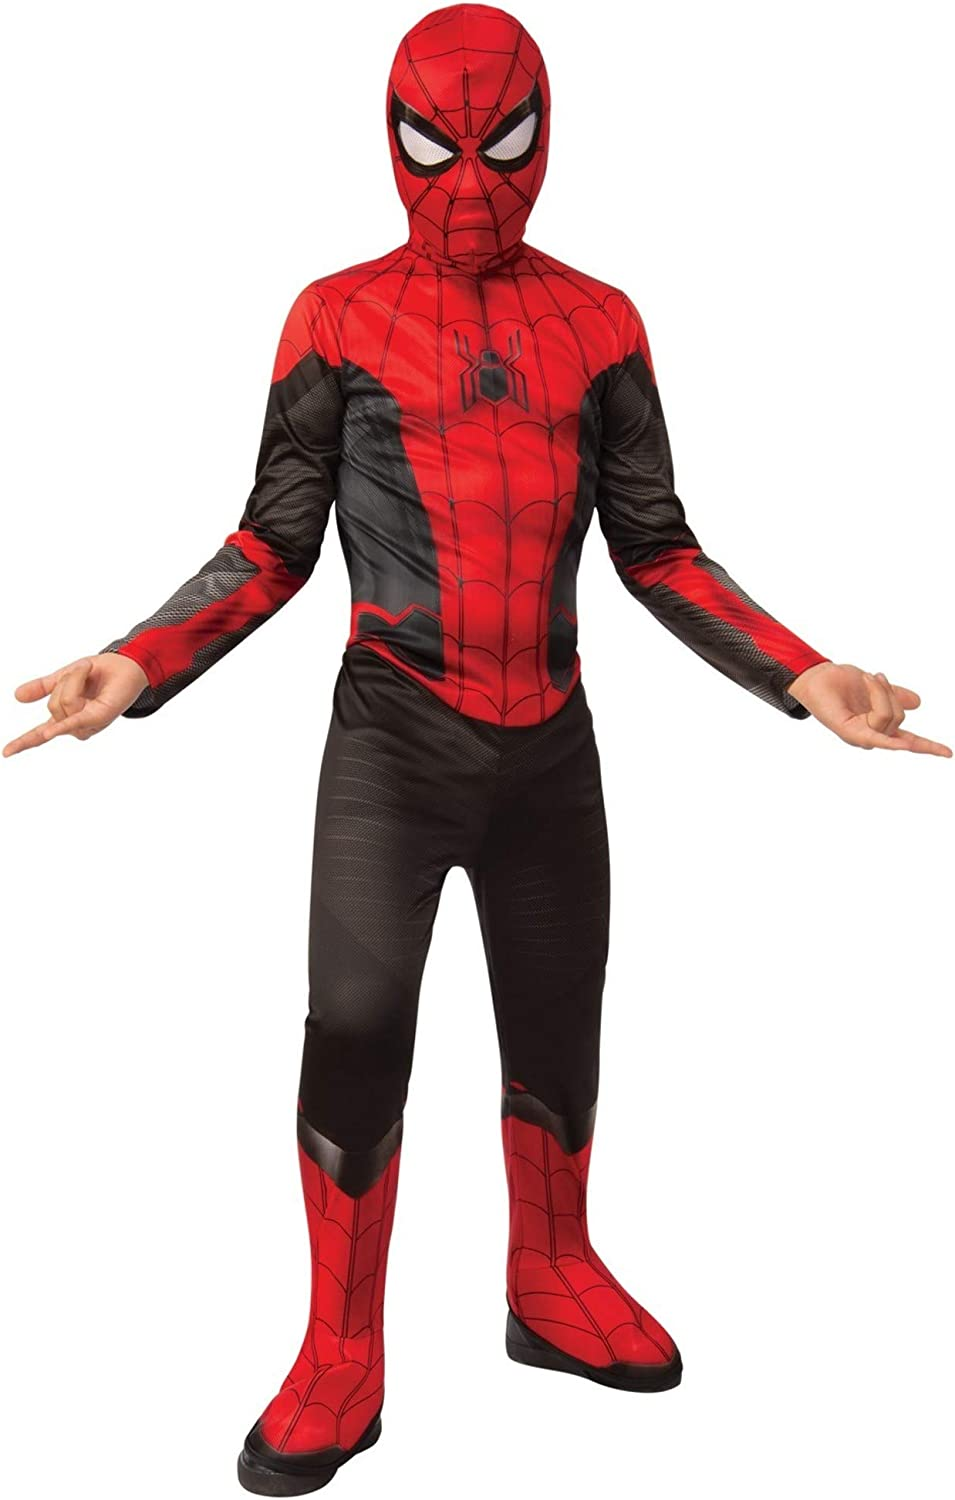 Rubie's Costume Spider Man Far From Home Red Black Child Costume